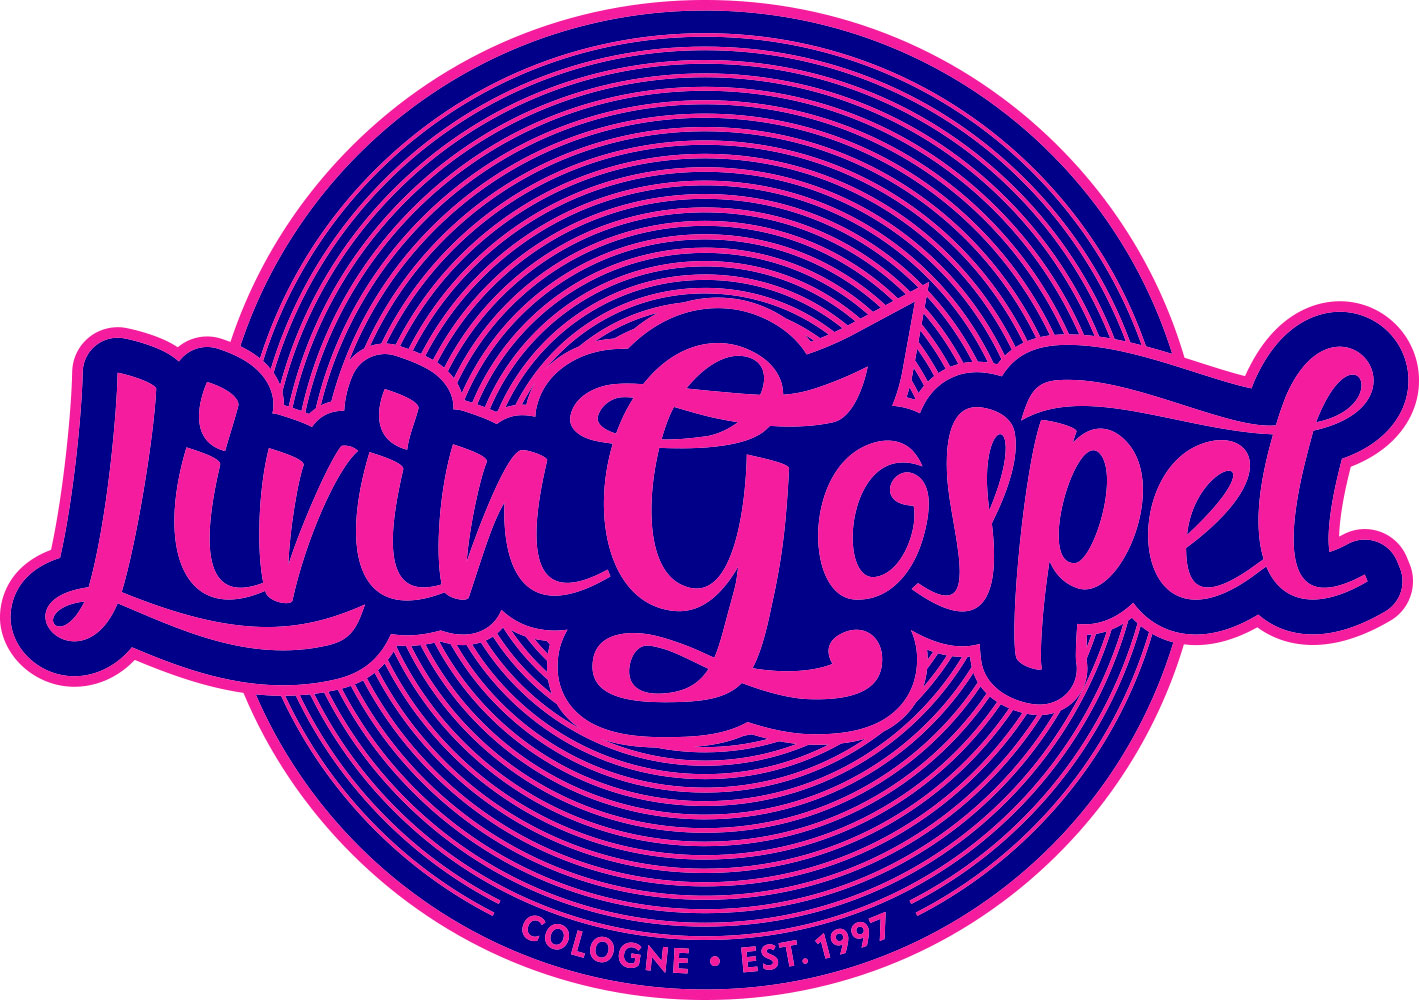 living Gospel logo